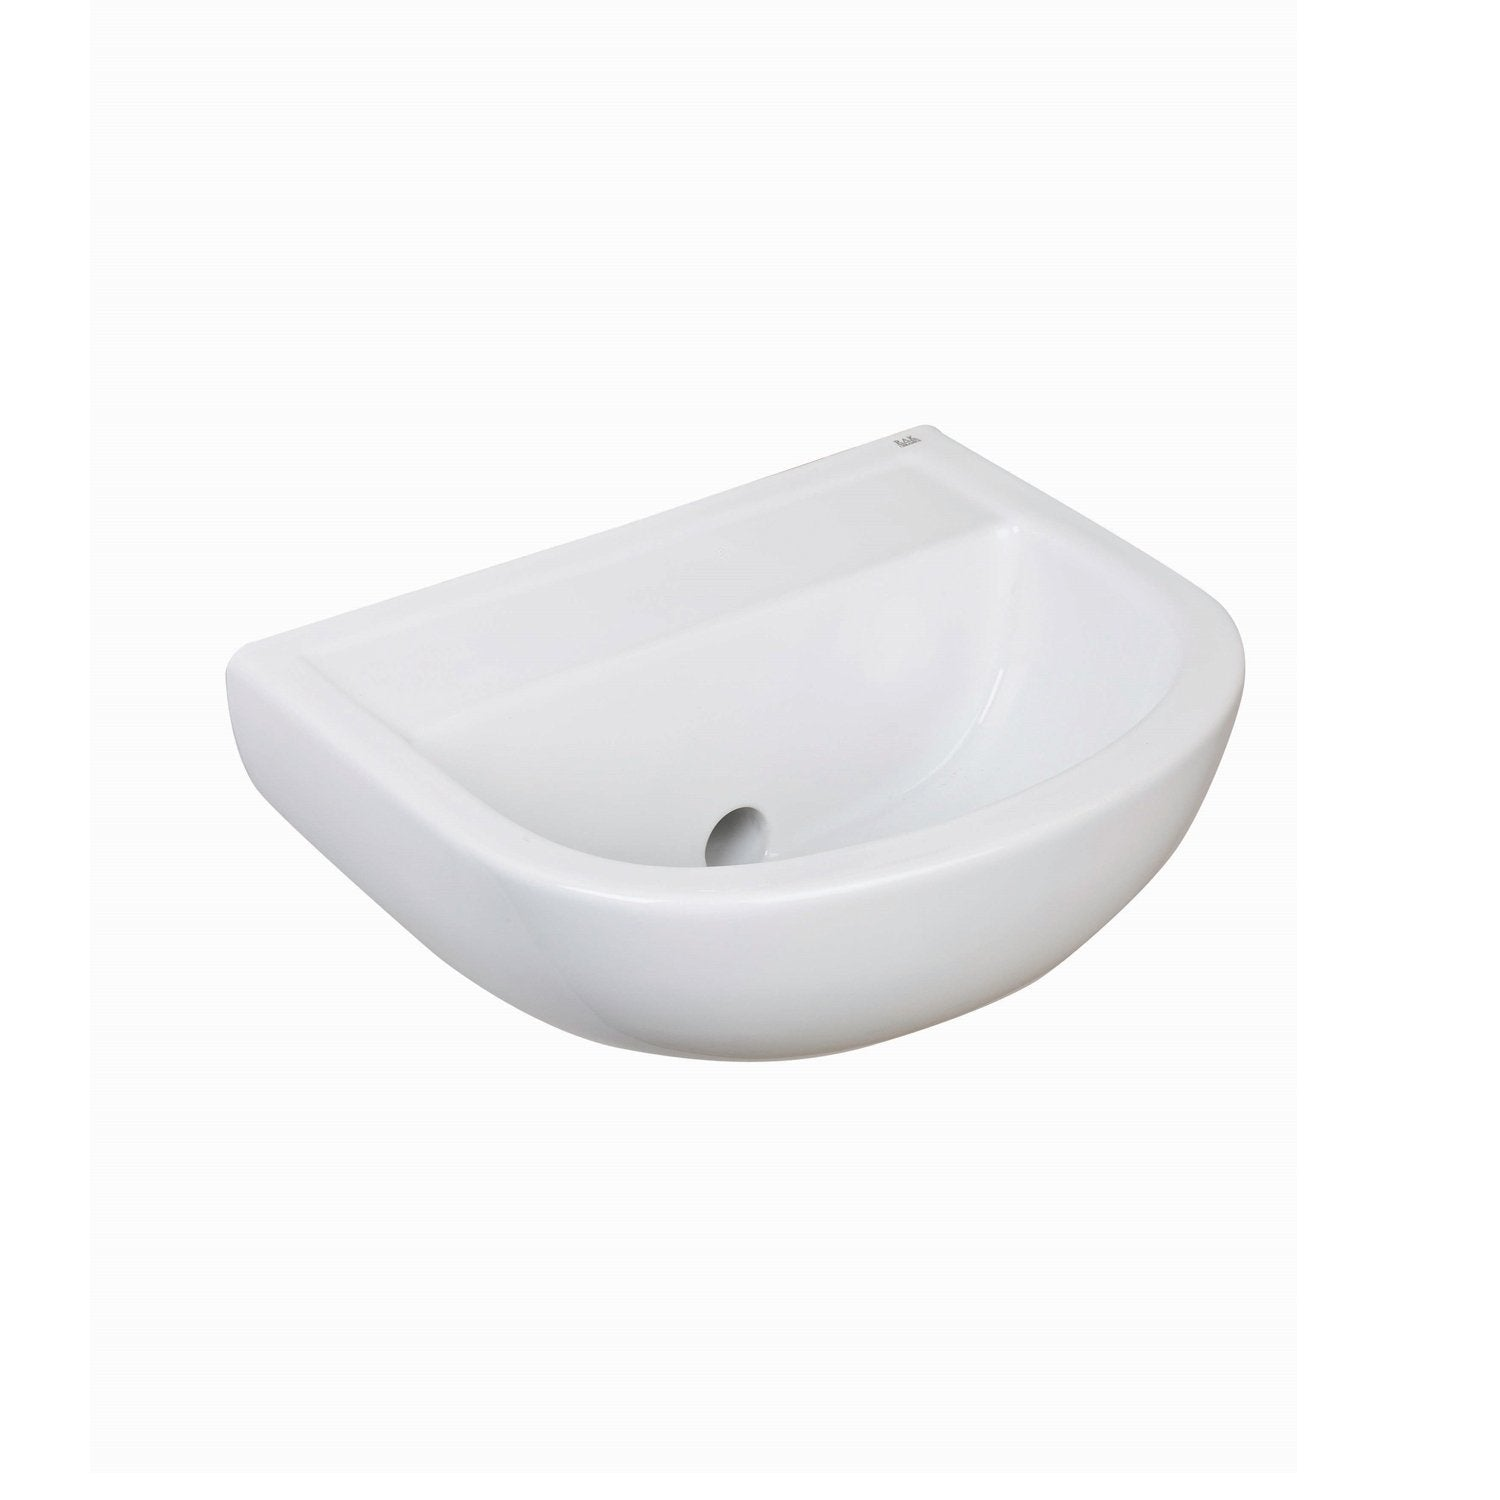 RAK Compact Special Needs HO Cloakroom Basin 380mm Wide - 0 Tap Hole